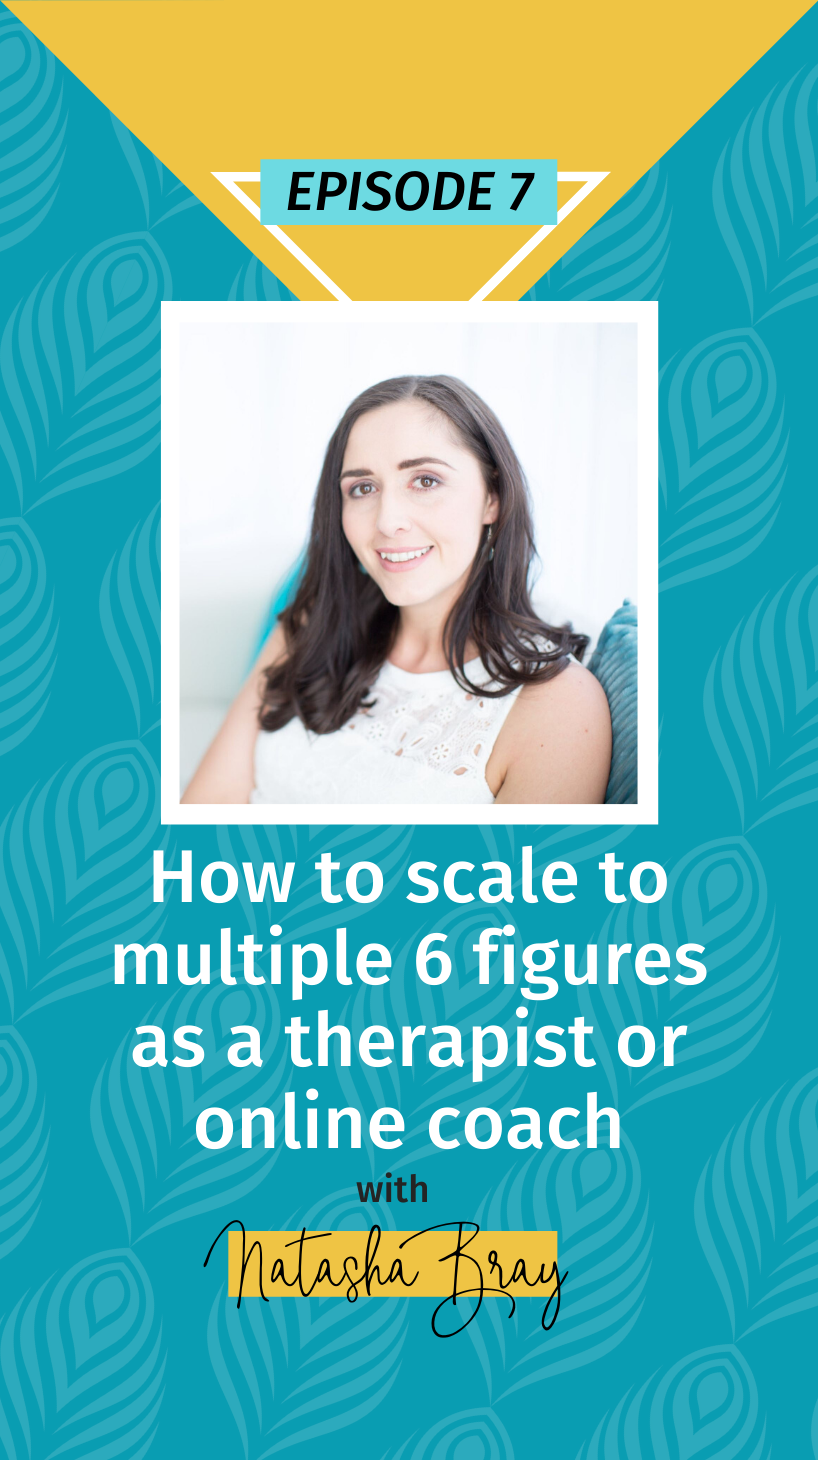 007 Making Babies + Making Bank: How to scale to multiple 6 figures as a therapist or online coach, with Natasha Bray